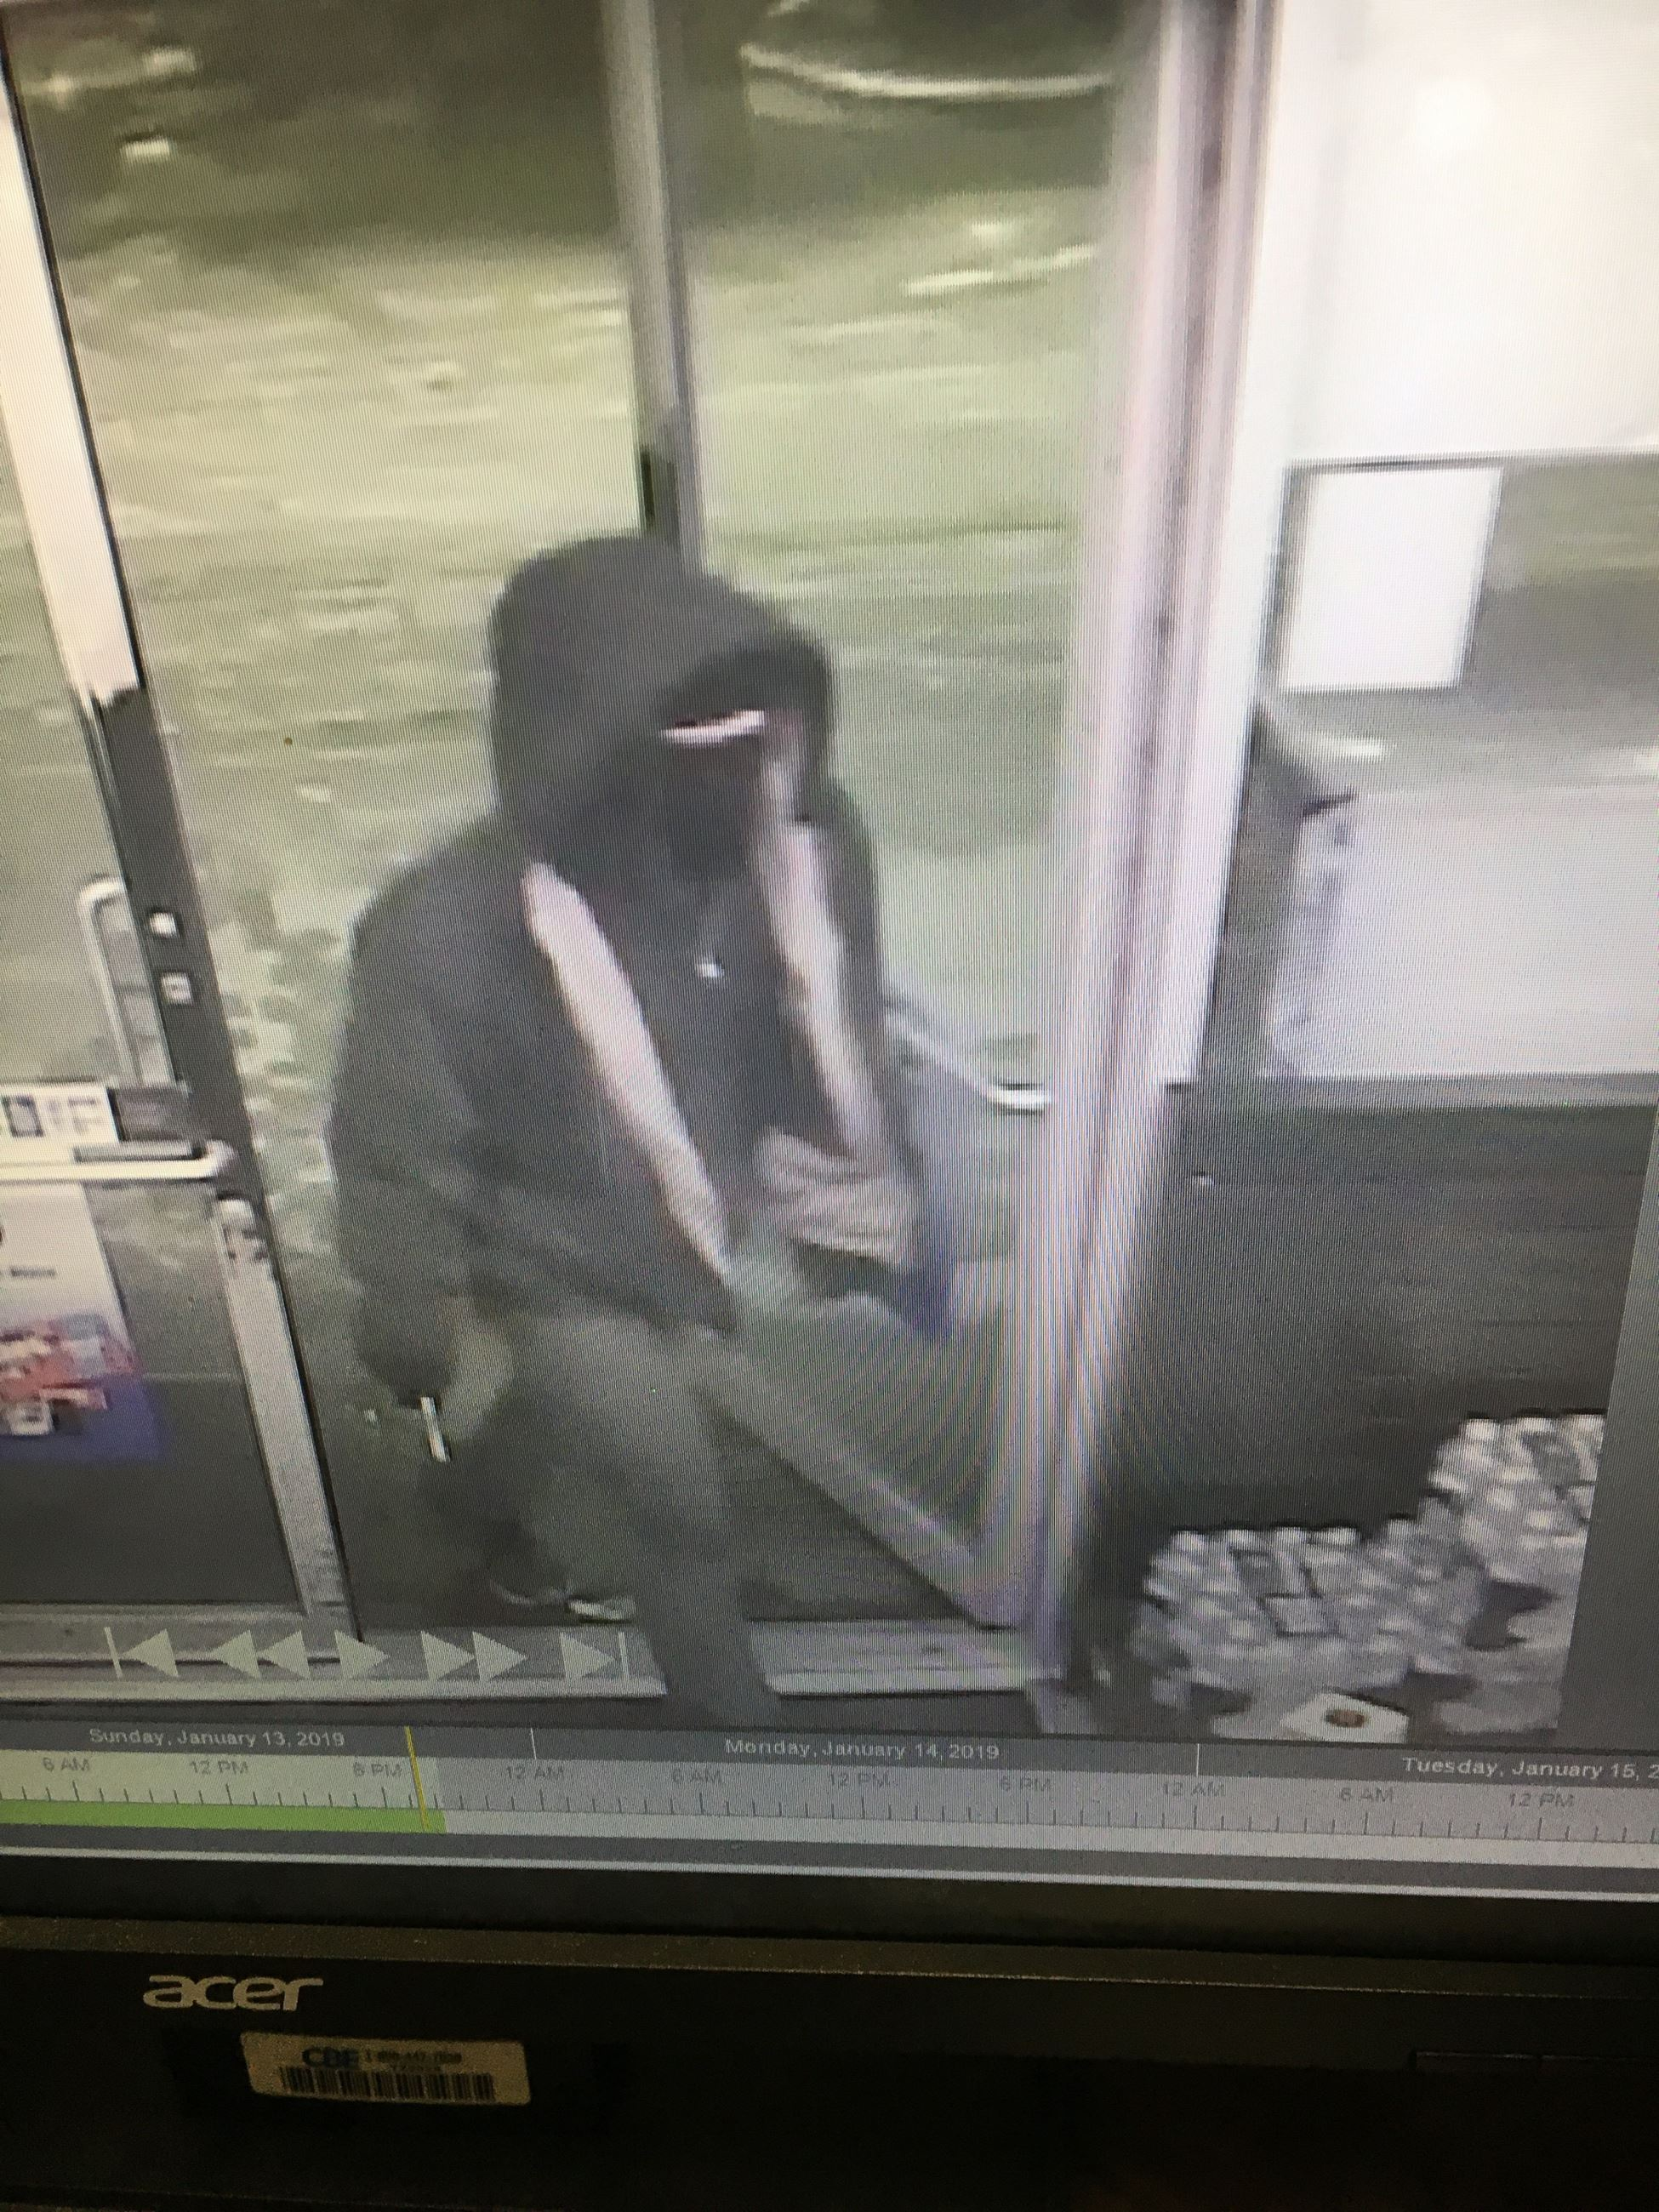 Suspect in 1-13-19 Exxon Robbery Photo 1